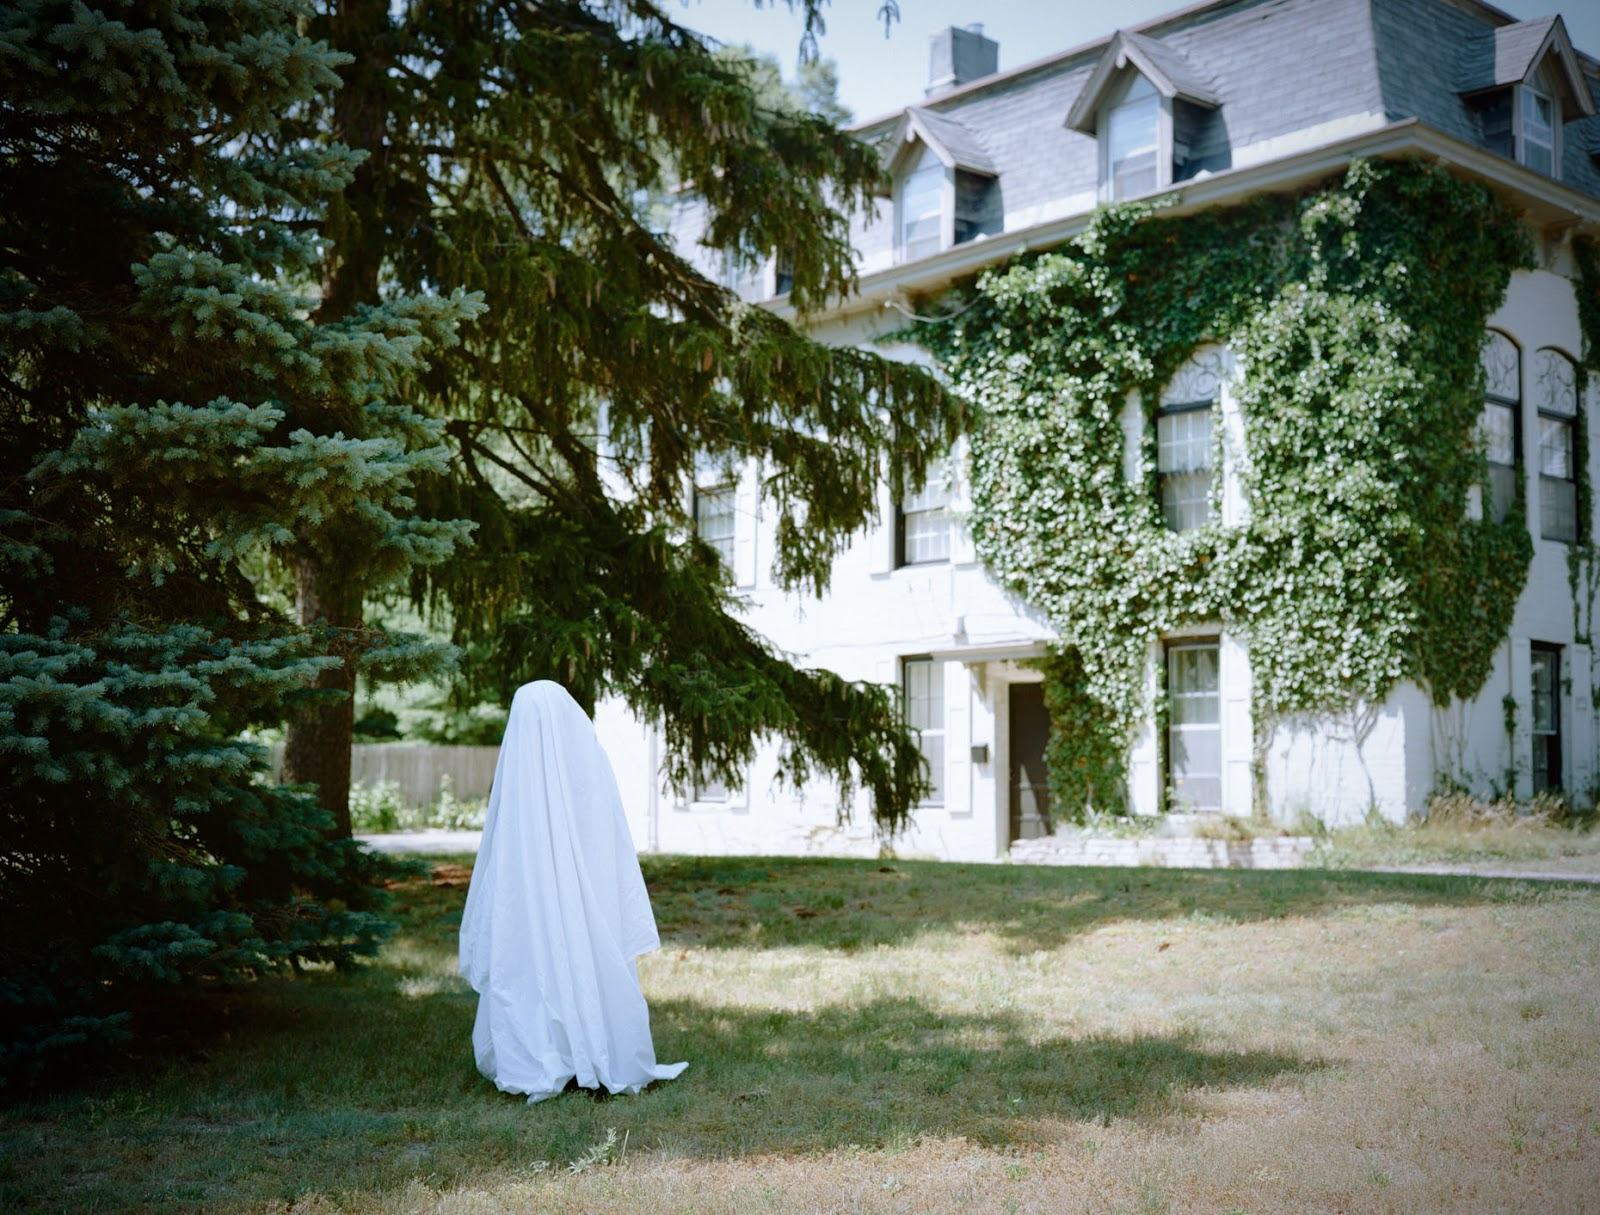 ©Dan Busta - Ghosts. Fotografía | Photography